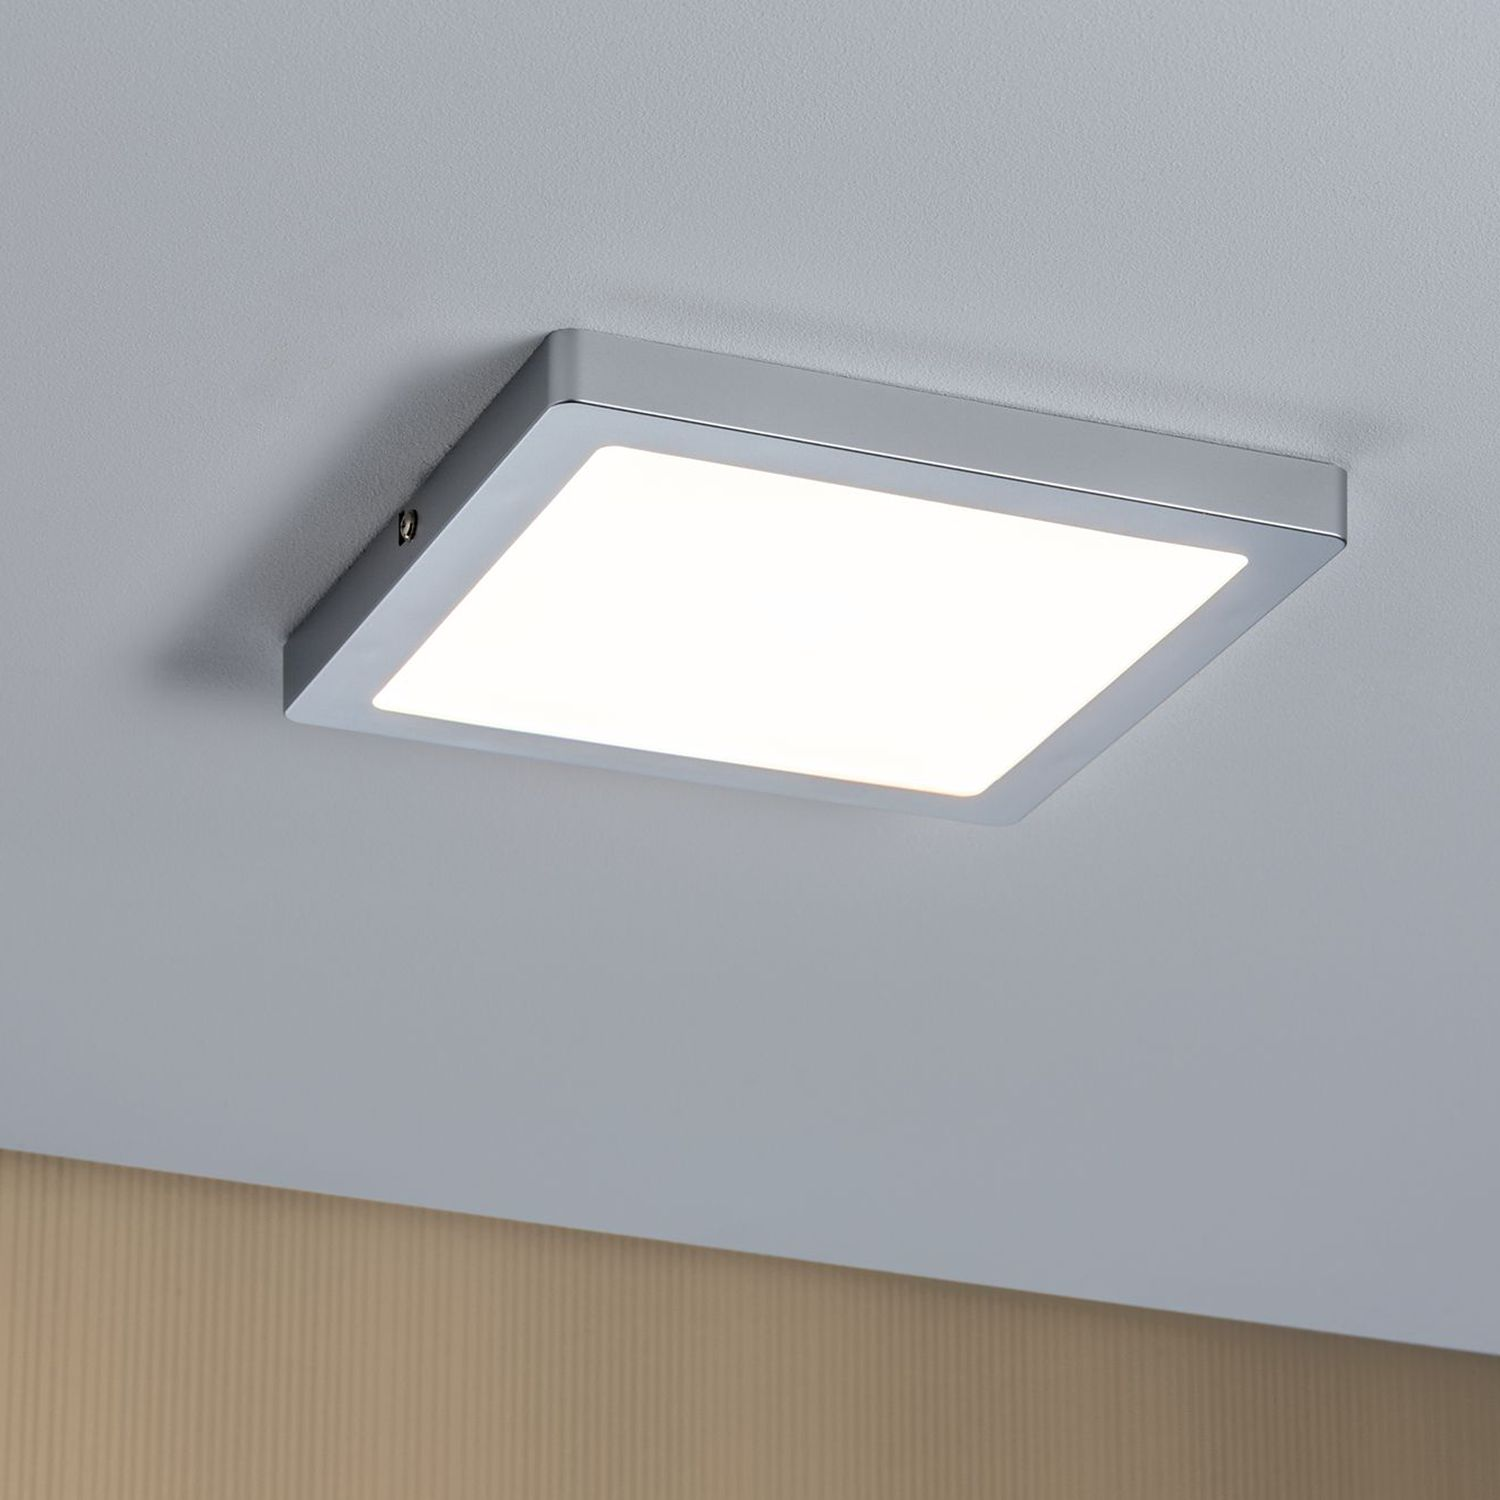 home24 LED-Deckenleuchte Panel III